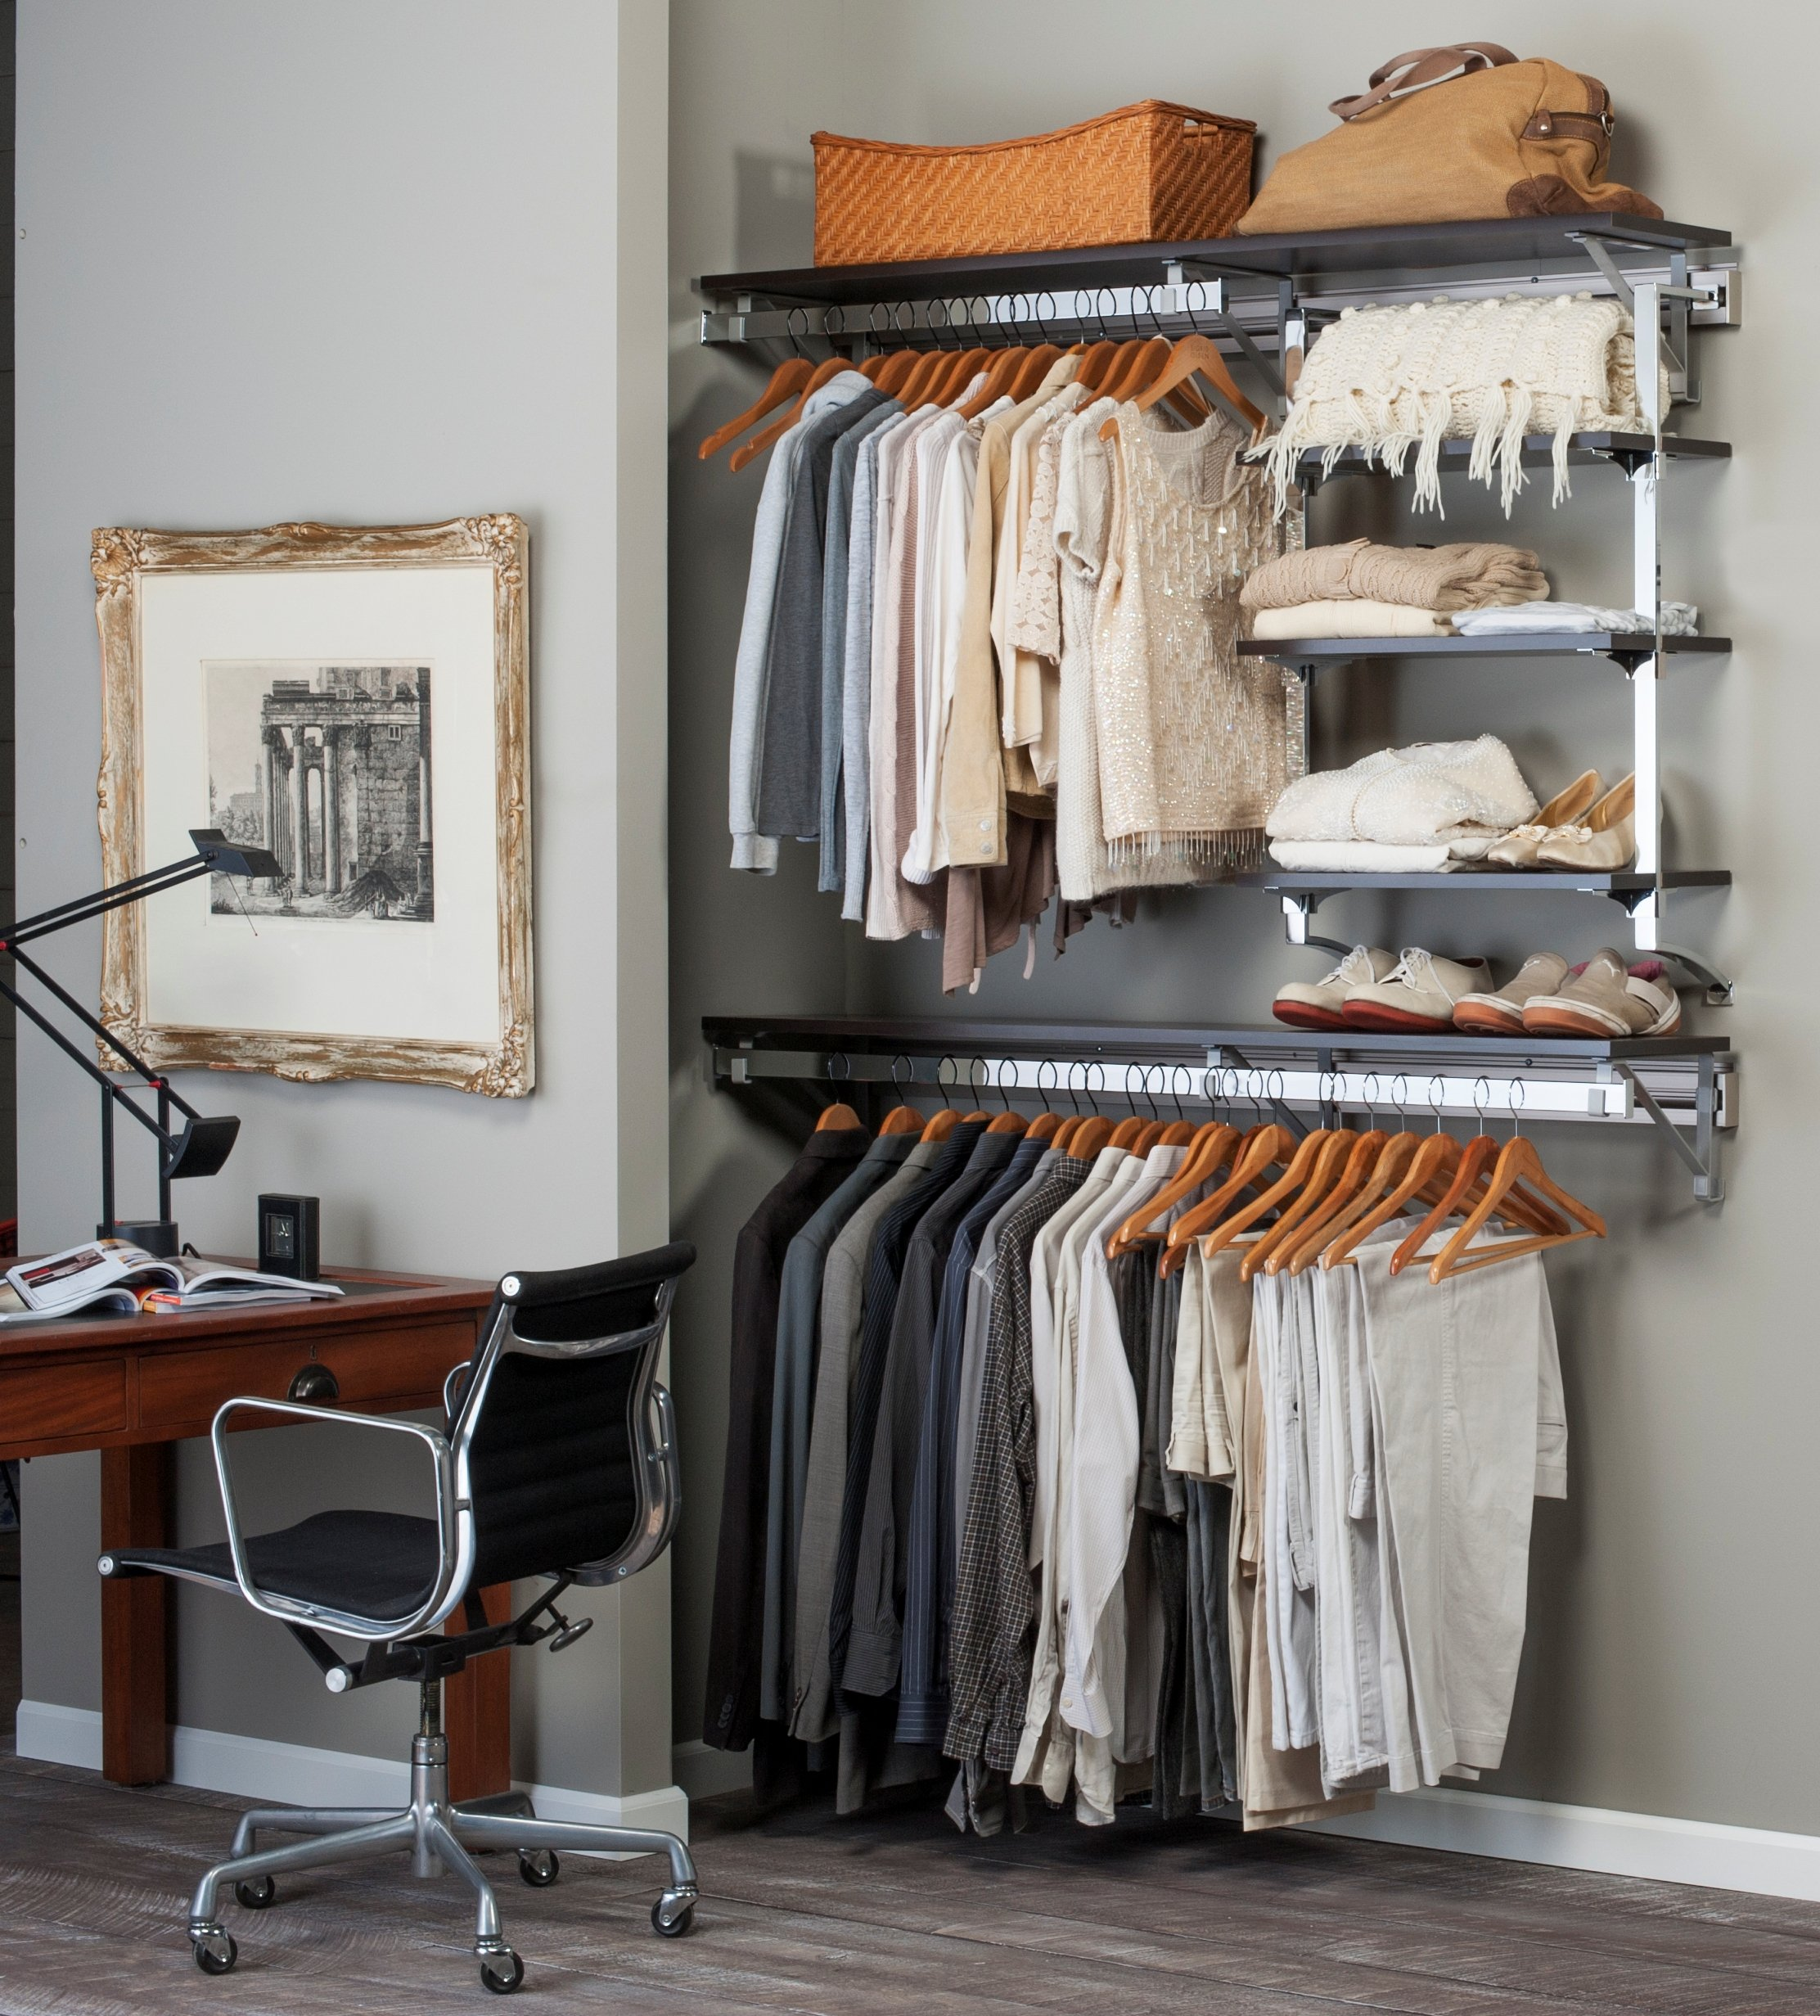 Arrange a Space DHX.72.W Select Closet System with Adjustable Shelves, 72 by 11.75 by 84-Inch, White